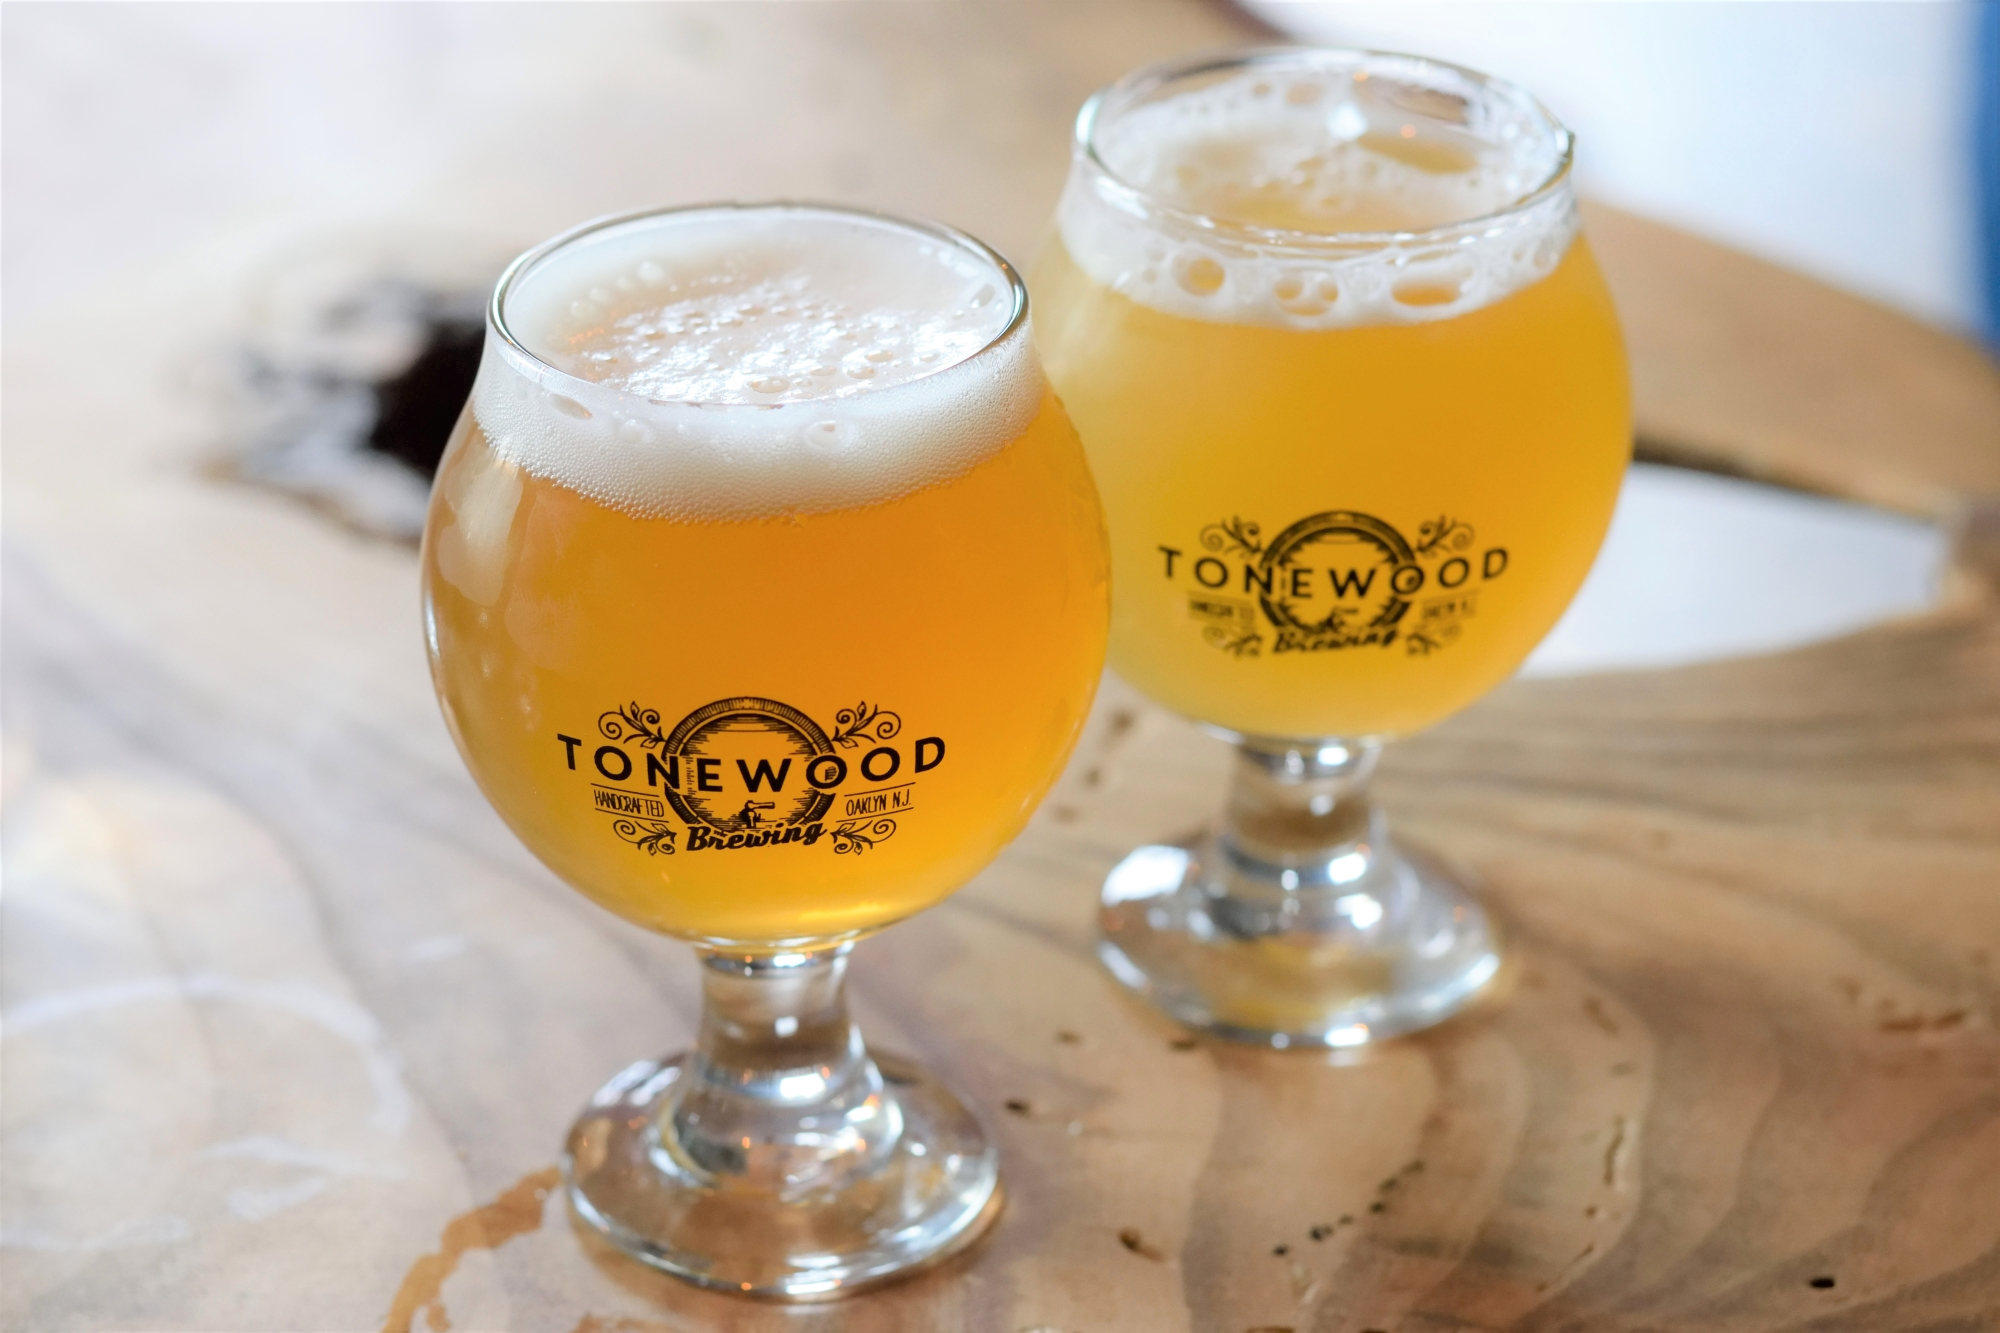 Session IPA (left) and Fuego (right)